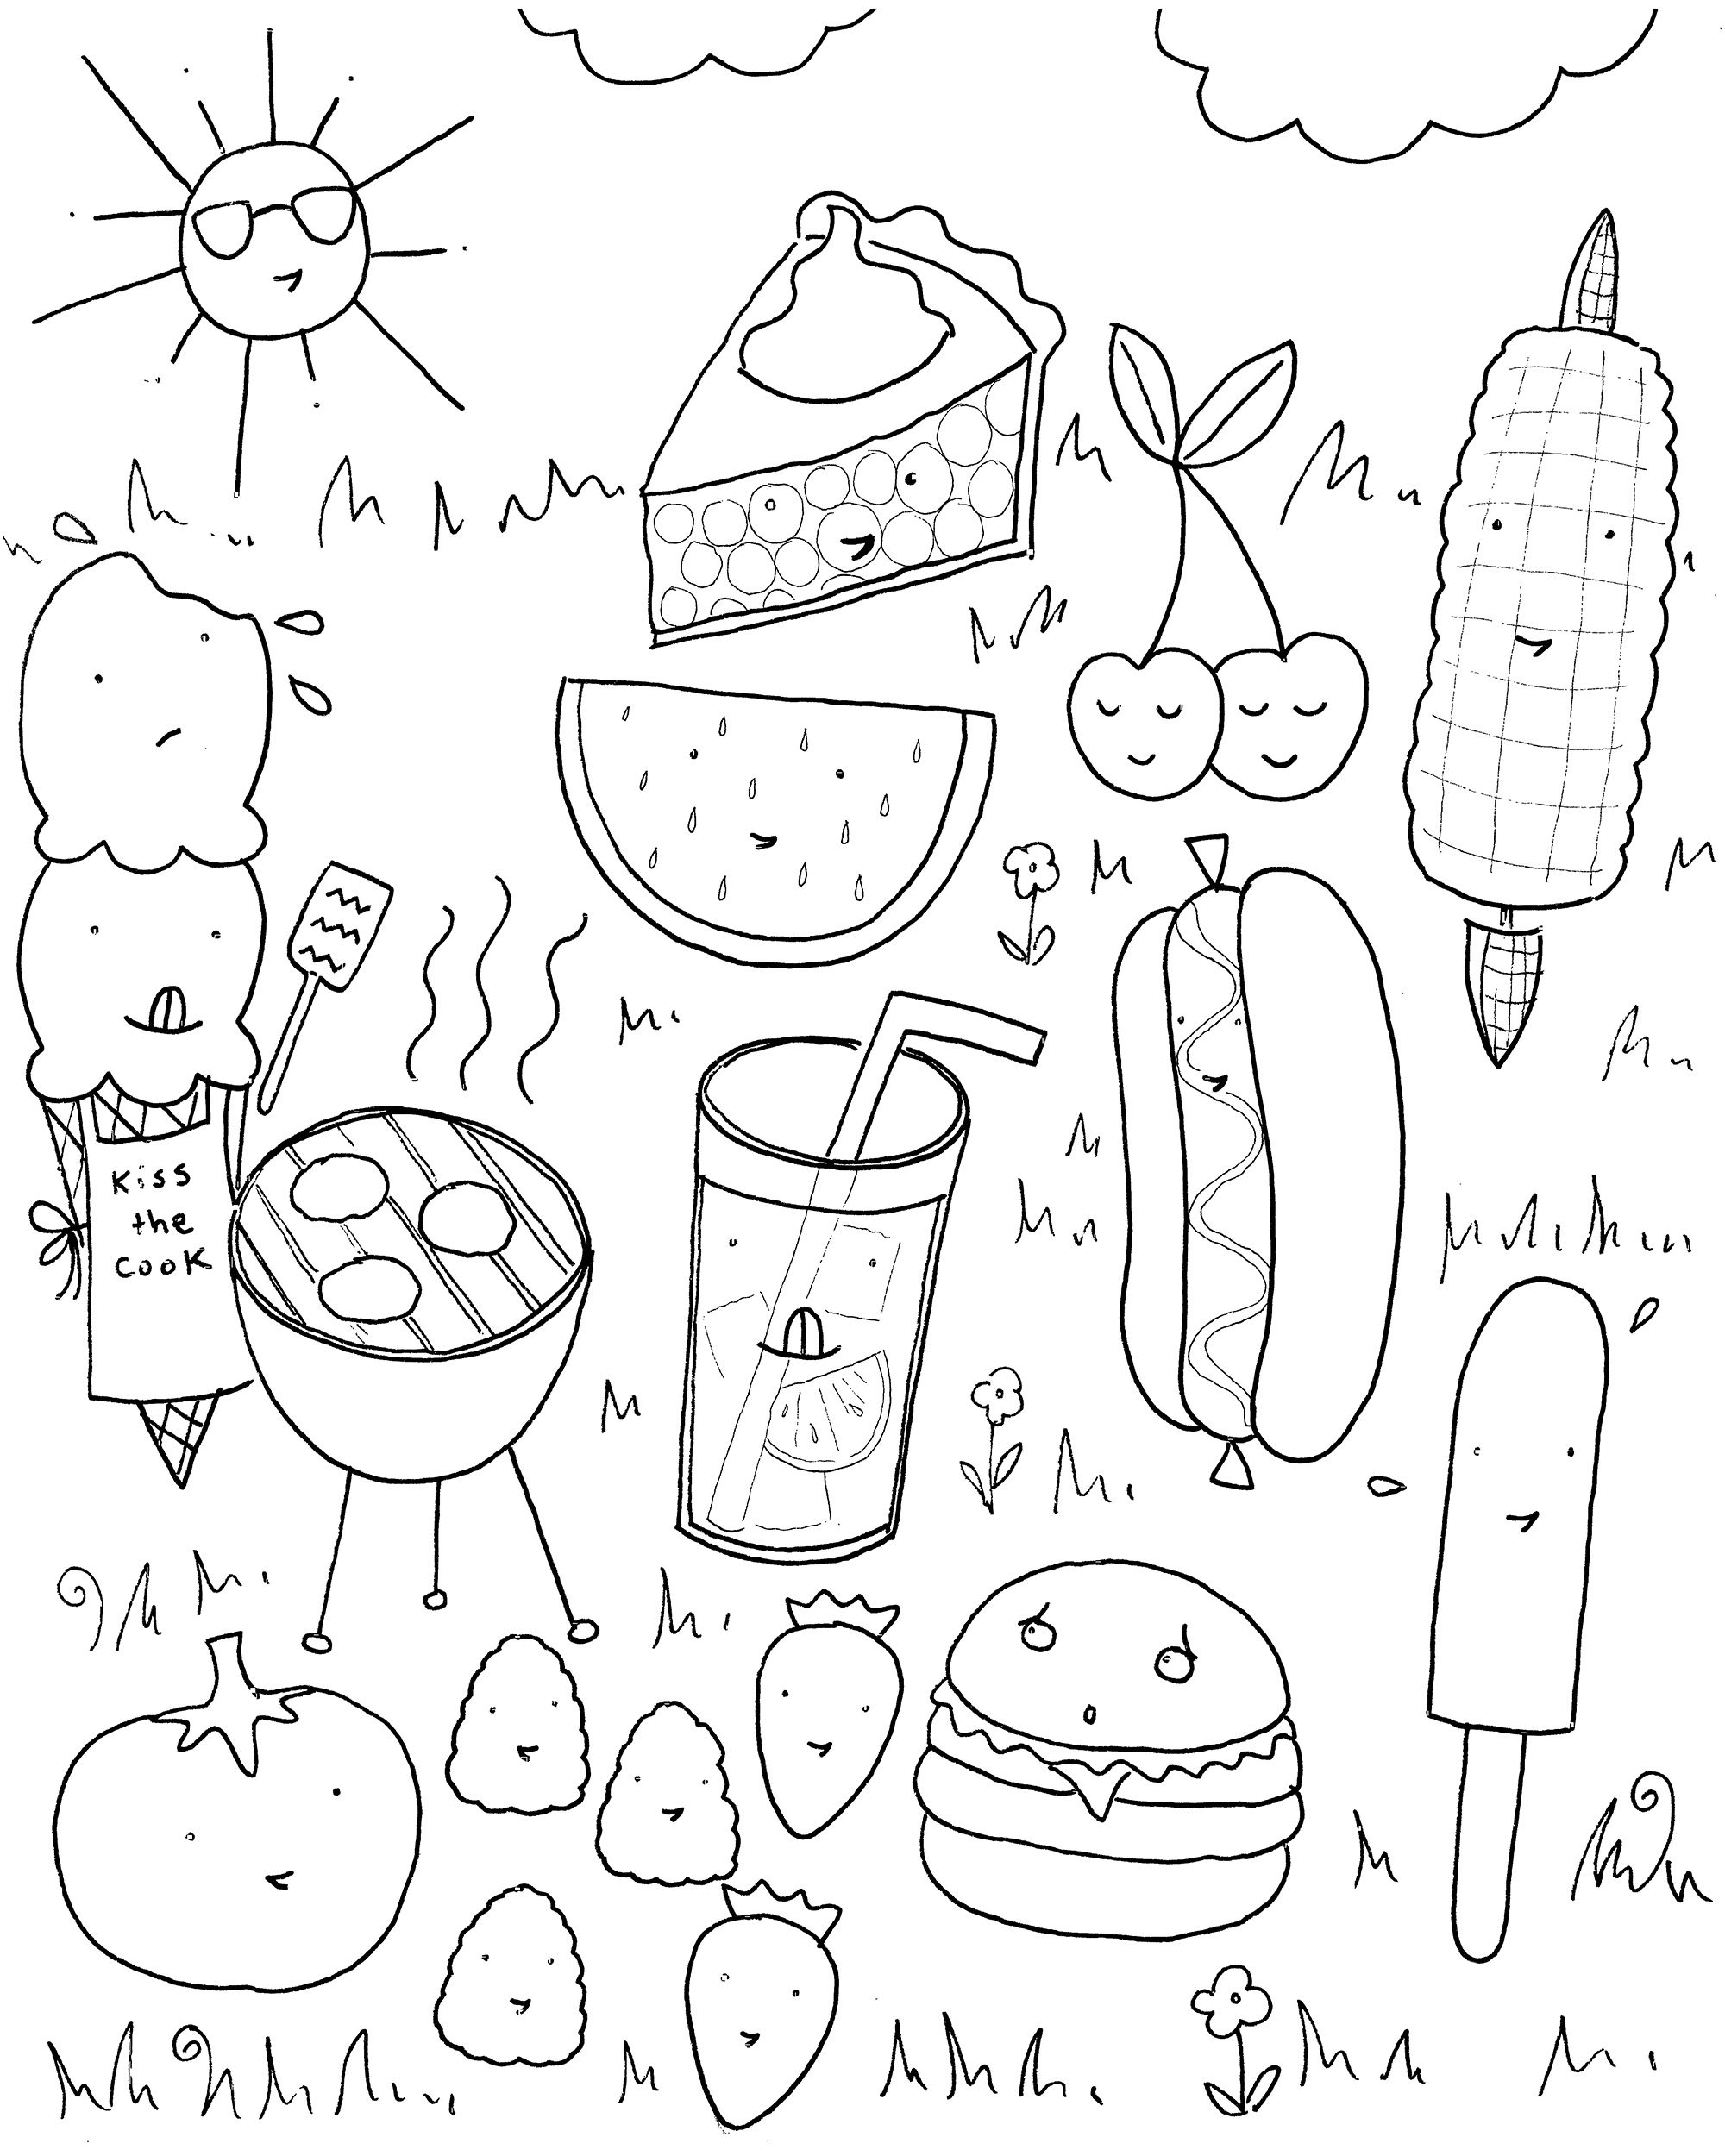 Picnic Food Coloring Page For Kids   All Coloring Pages Smoke